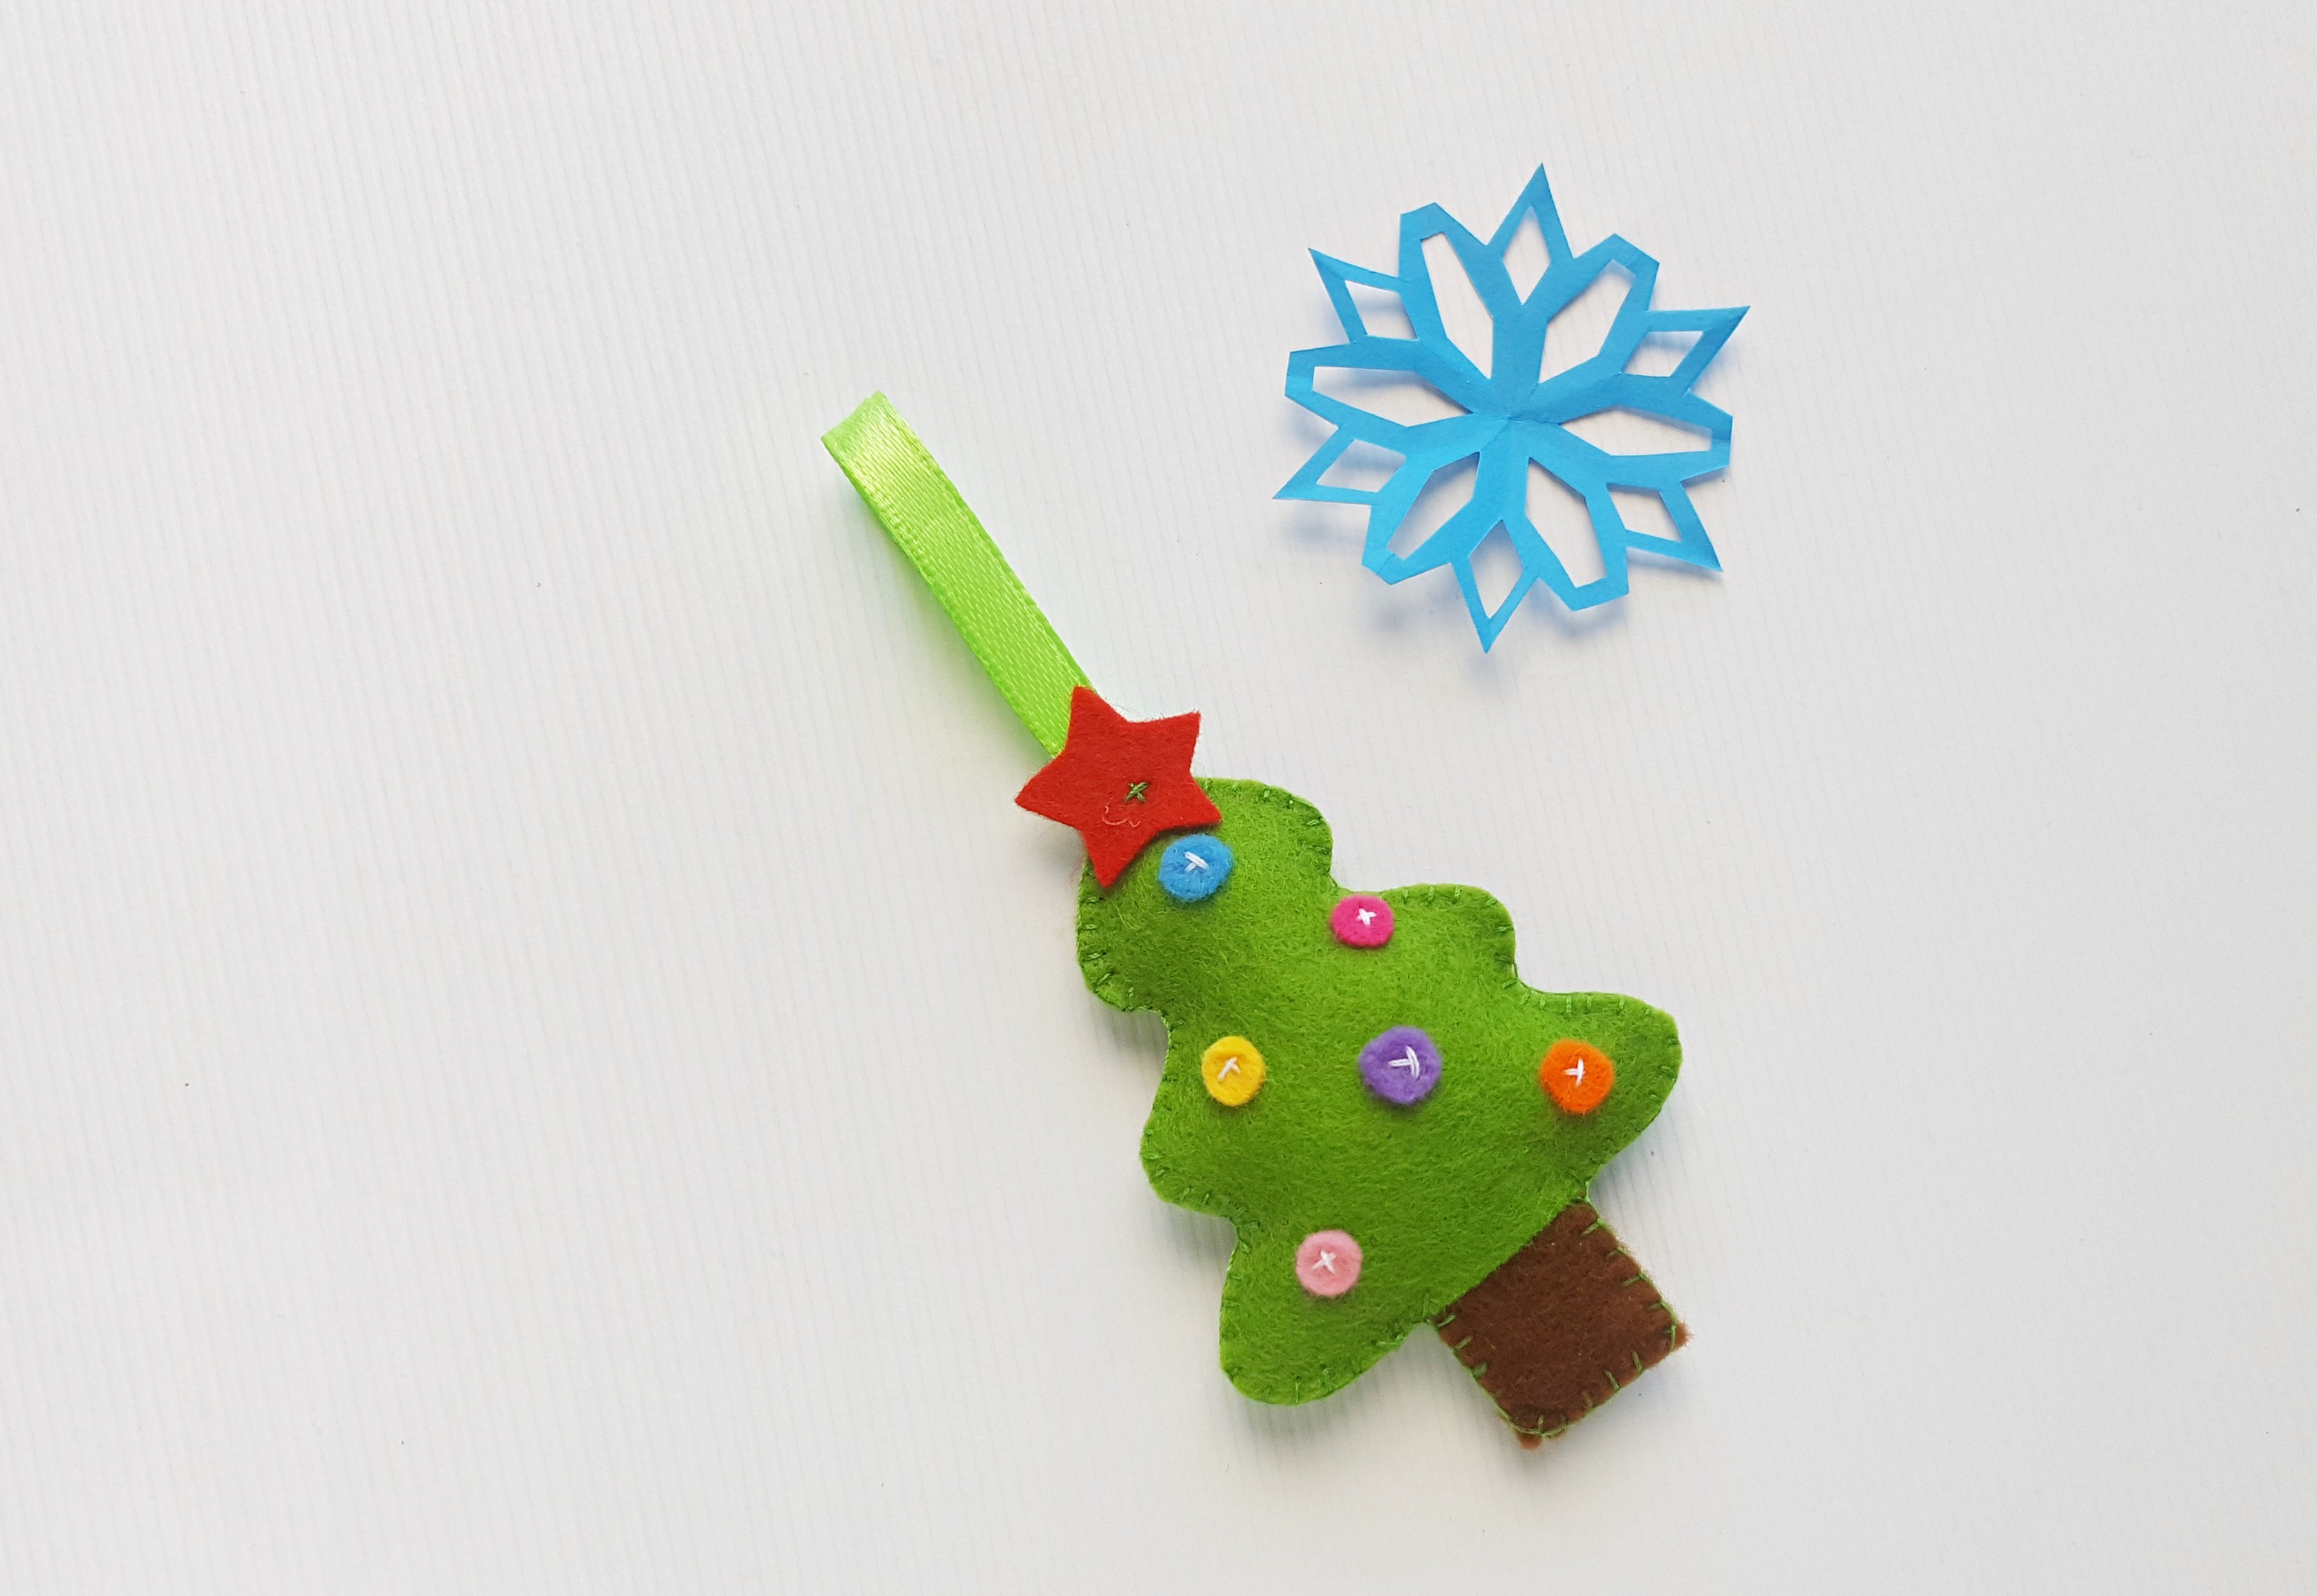 Felt Christmas Tree Ornament with Blue Paper Snowflake